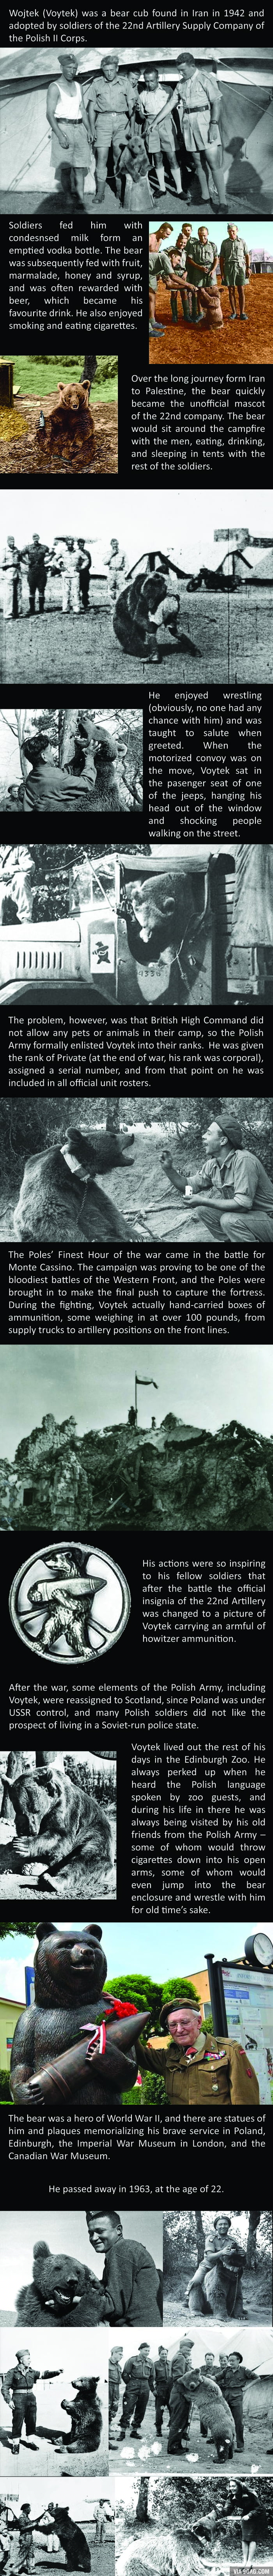 The amazing story of Voytek the Soldier Bear